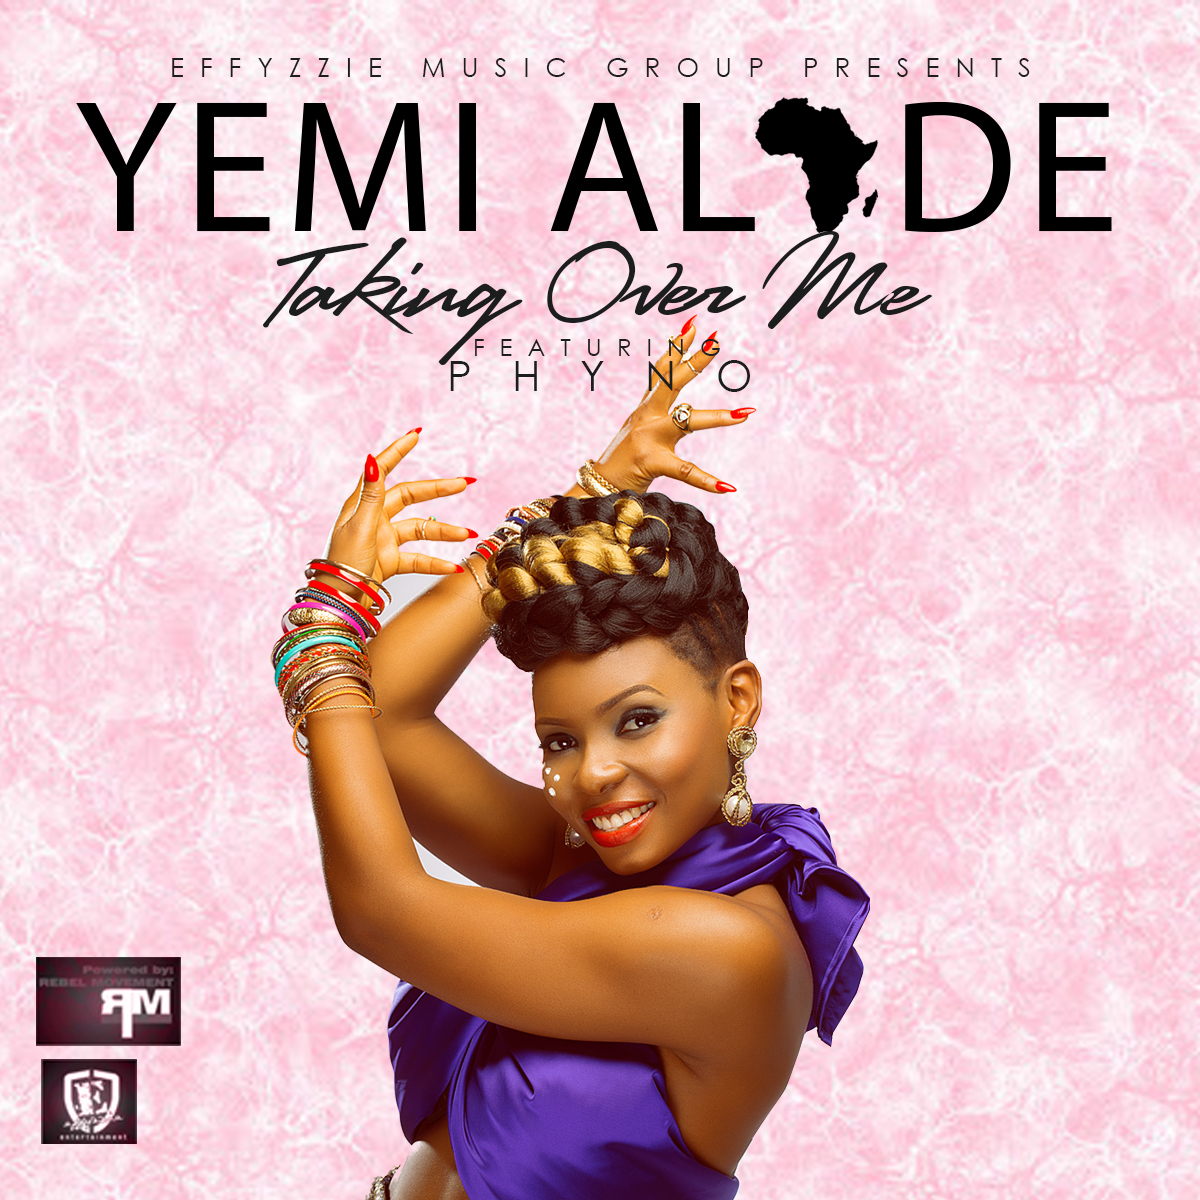 Yemi Alade - Taking Over Me ft  Phyno (Prod by